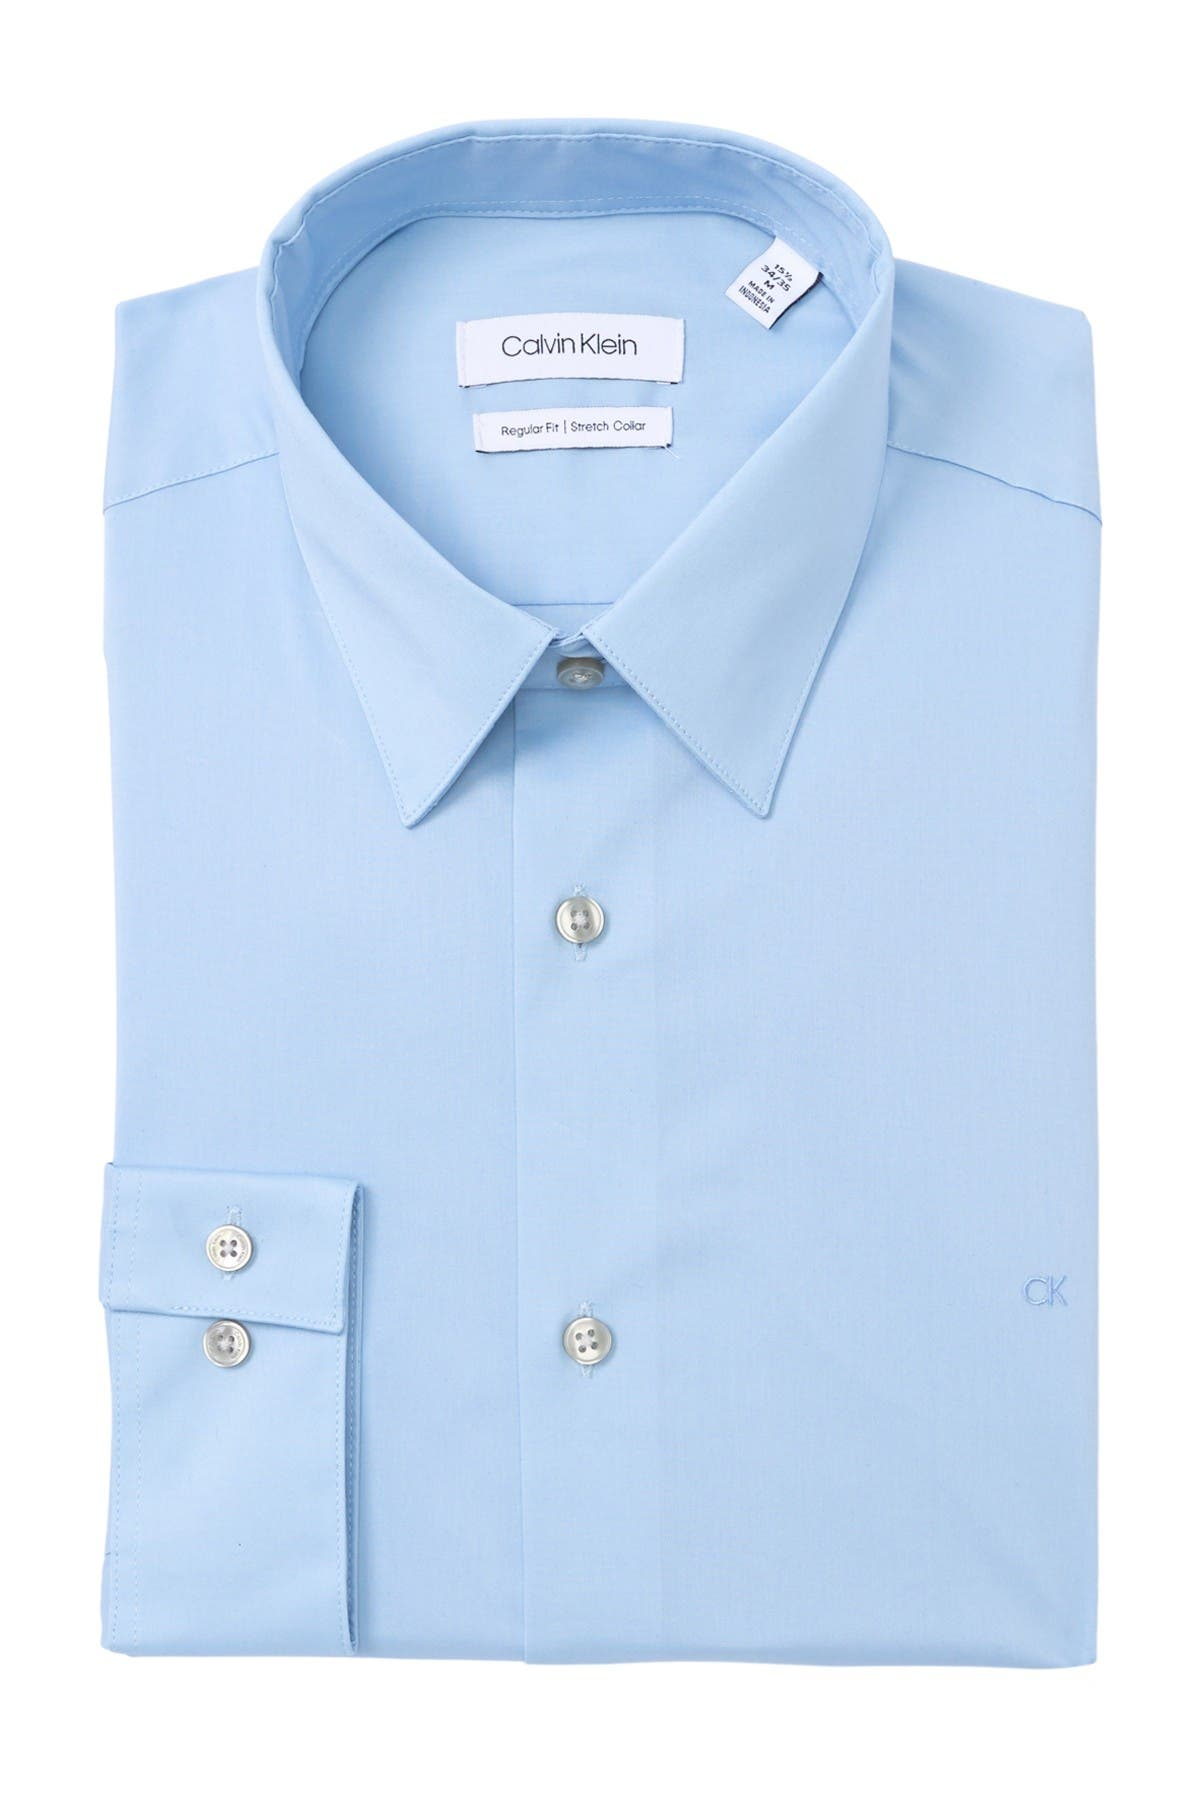 Image of Calvin Klein Regular Fit Dress Shirt